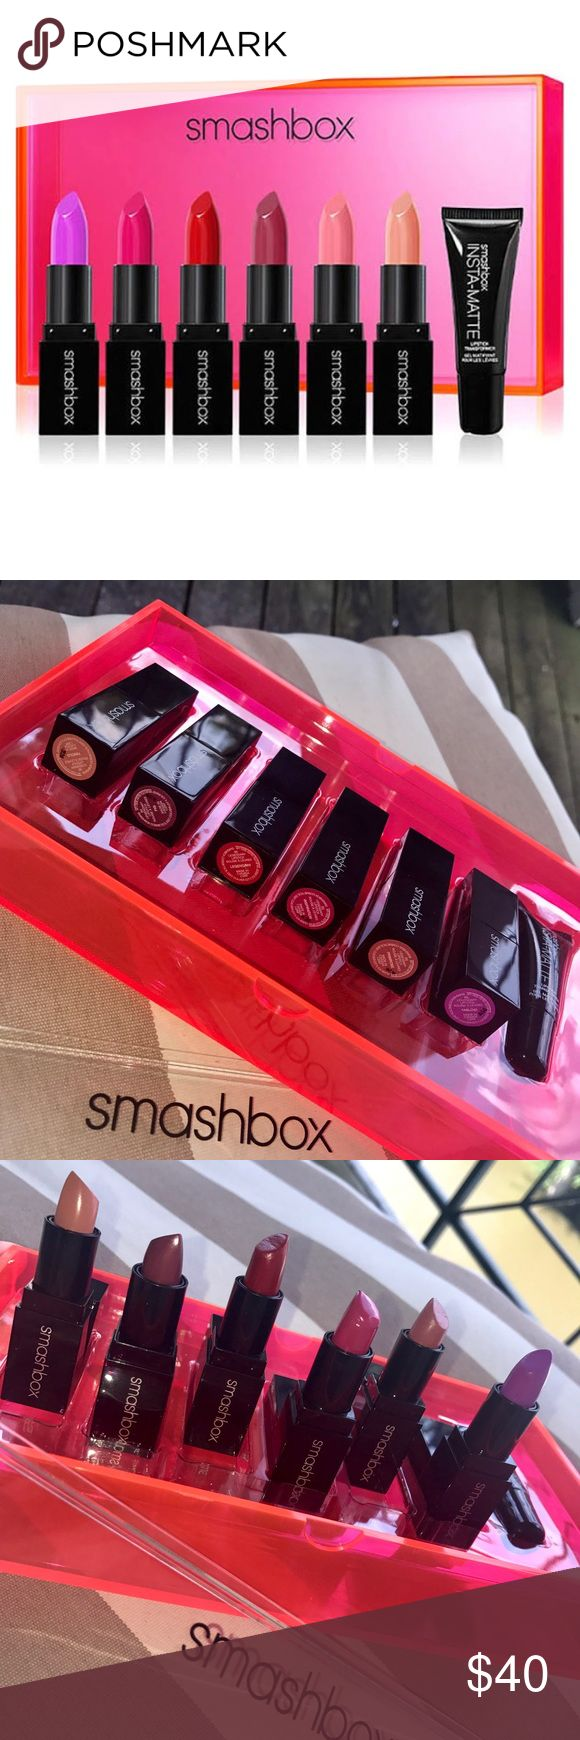 """Smashbox💄Light it Up Lipstick set +insta- Matte Smashbox Special Lipstick Set 💄6 Different colors + insta-Matte Lipstick transformer (turn any lipstick matte!!!) + original gift box [sturdy plastic - neon pink/orangish bottom and clear top]. Like new condition, some may have been color tested.       Lipstick Colors : From the """"Be Legendary"""" collection:  ~Famous (tan beige)  ~Fig (plum). ~Ledgendary (Red). ~Inspiration (Purplish Rose)  ~Primrose (dusty rose)  ~Tabloid (Fun Bright Purple)…"""